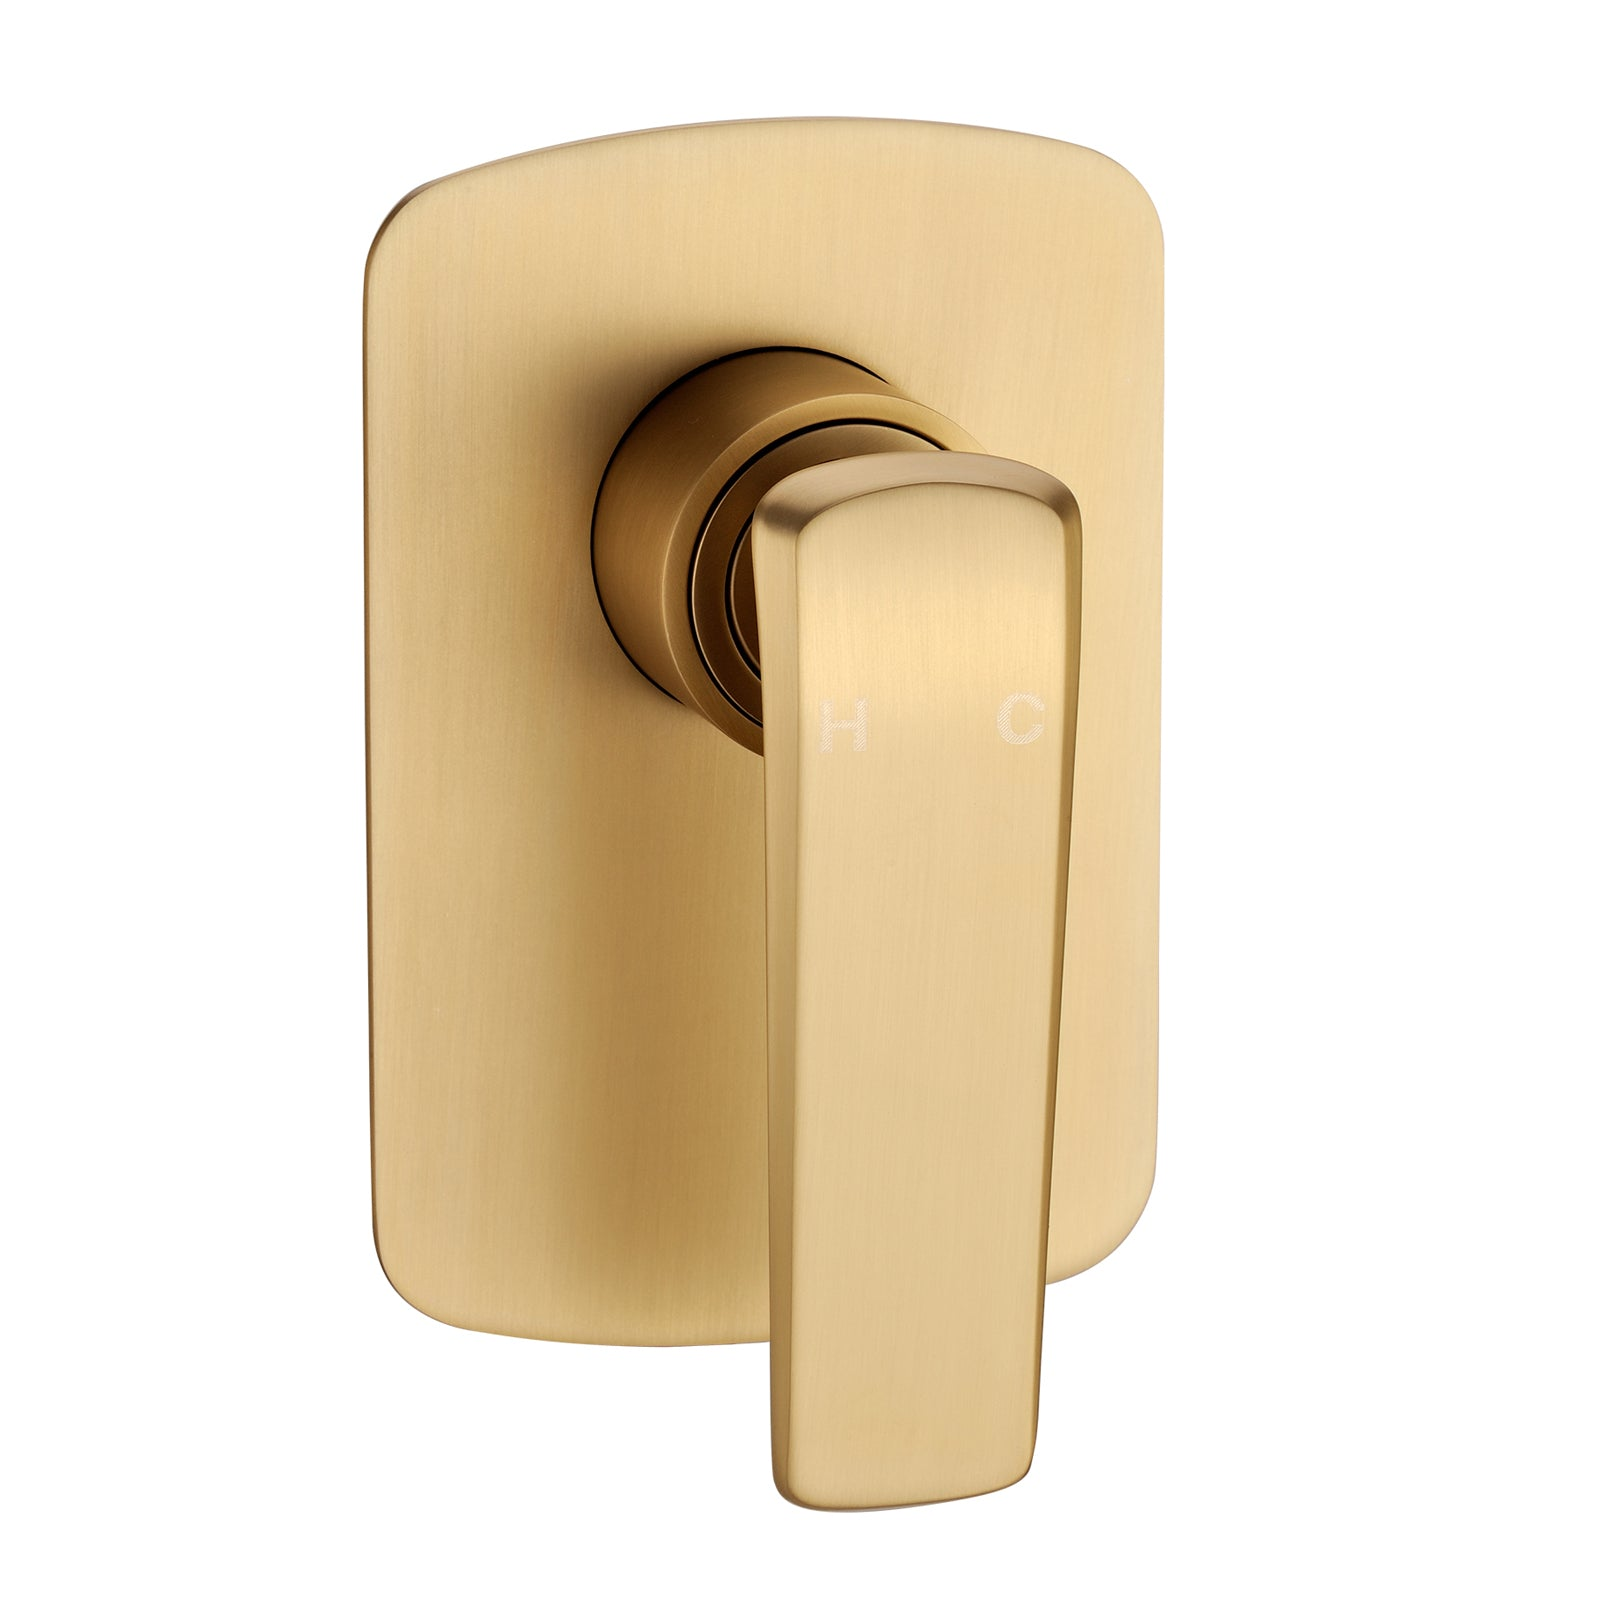 Norico Esperia Brushed Yellow Gold Wall Mixer